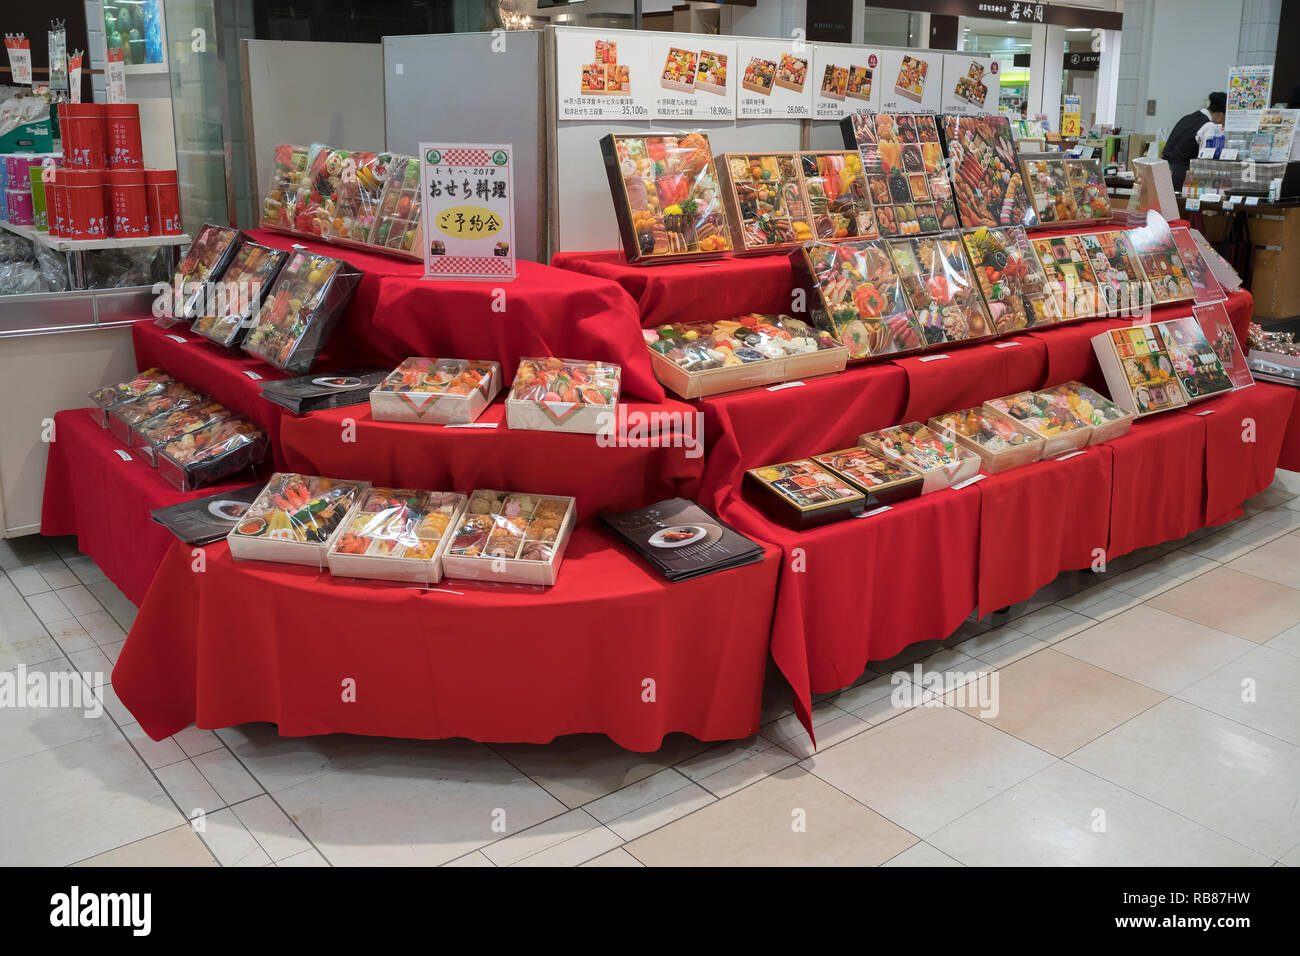 Beppu, Japan - November 3, 2018: Beautiful wrapped gifts and presents with food and fruit, called Omiyage in the supermarket of the department store - Stock Image